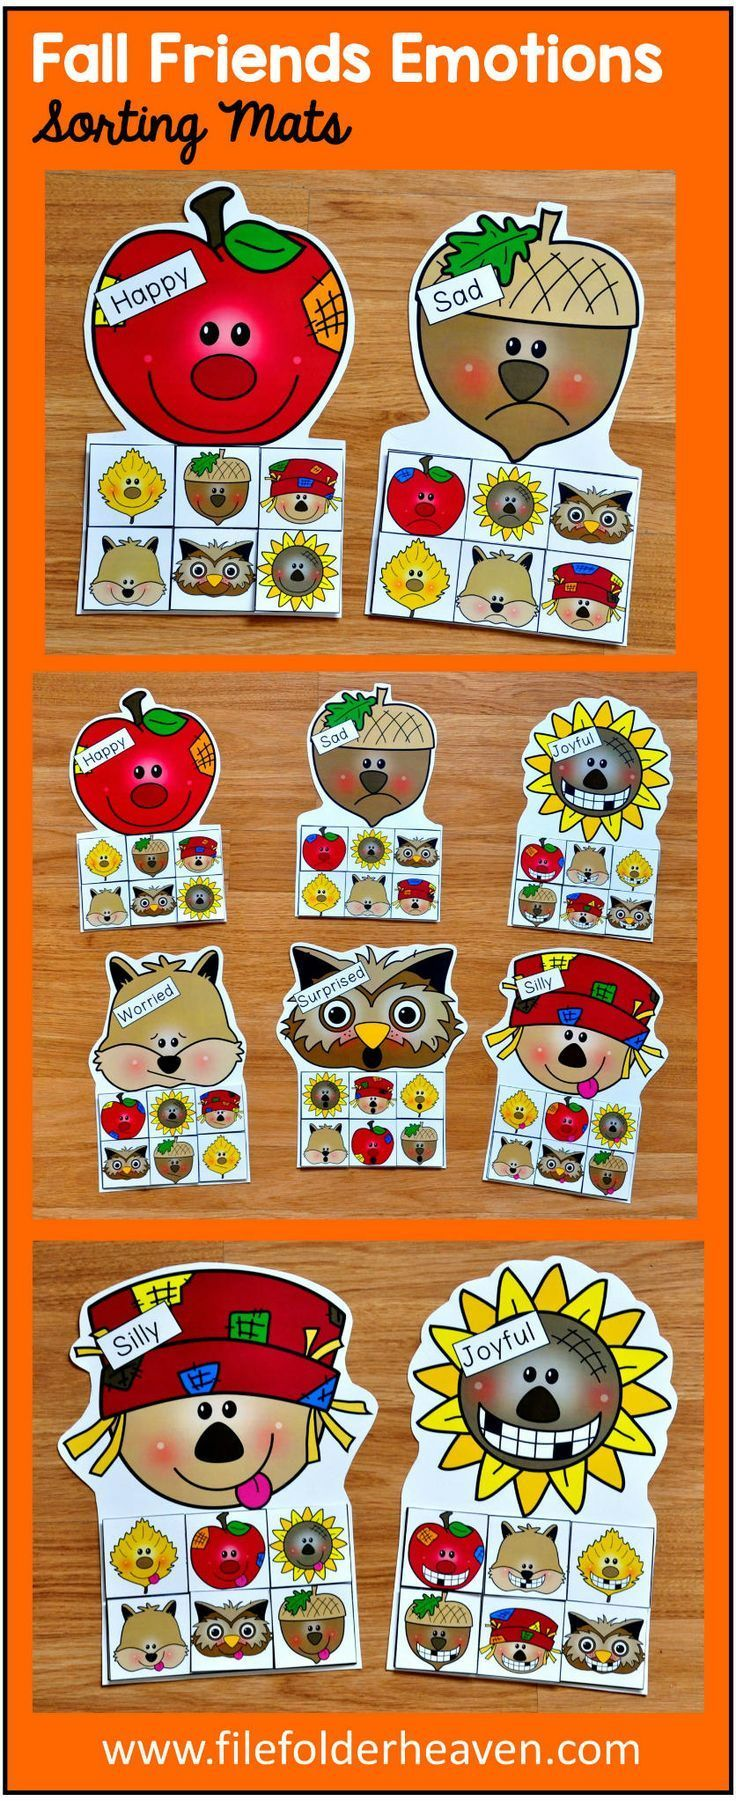 These Fall Friends Emotions Sorting Activities offer a fun and seasonal way for students to work on identifying emotions. This set includes 6 unique mats: an apple, an owl, an acorn, a squirrel, a sunflower and a scarecrow. At an independent workstation, center or language group, students complete the following sorting and classification activities.  Sorting Happy Sorting Sad Sorting Silly Sorting Joyful Sorting Worried